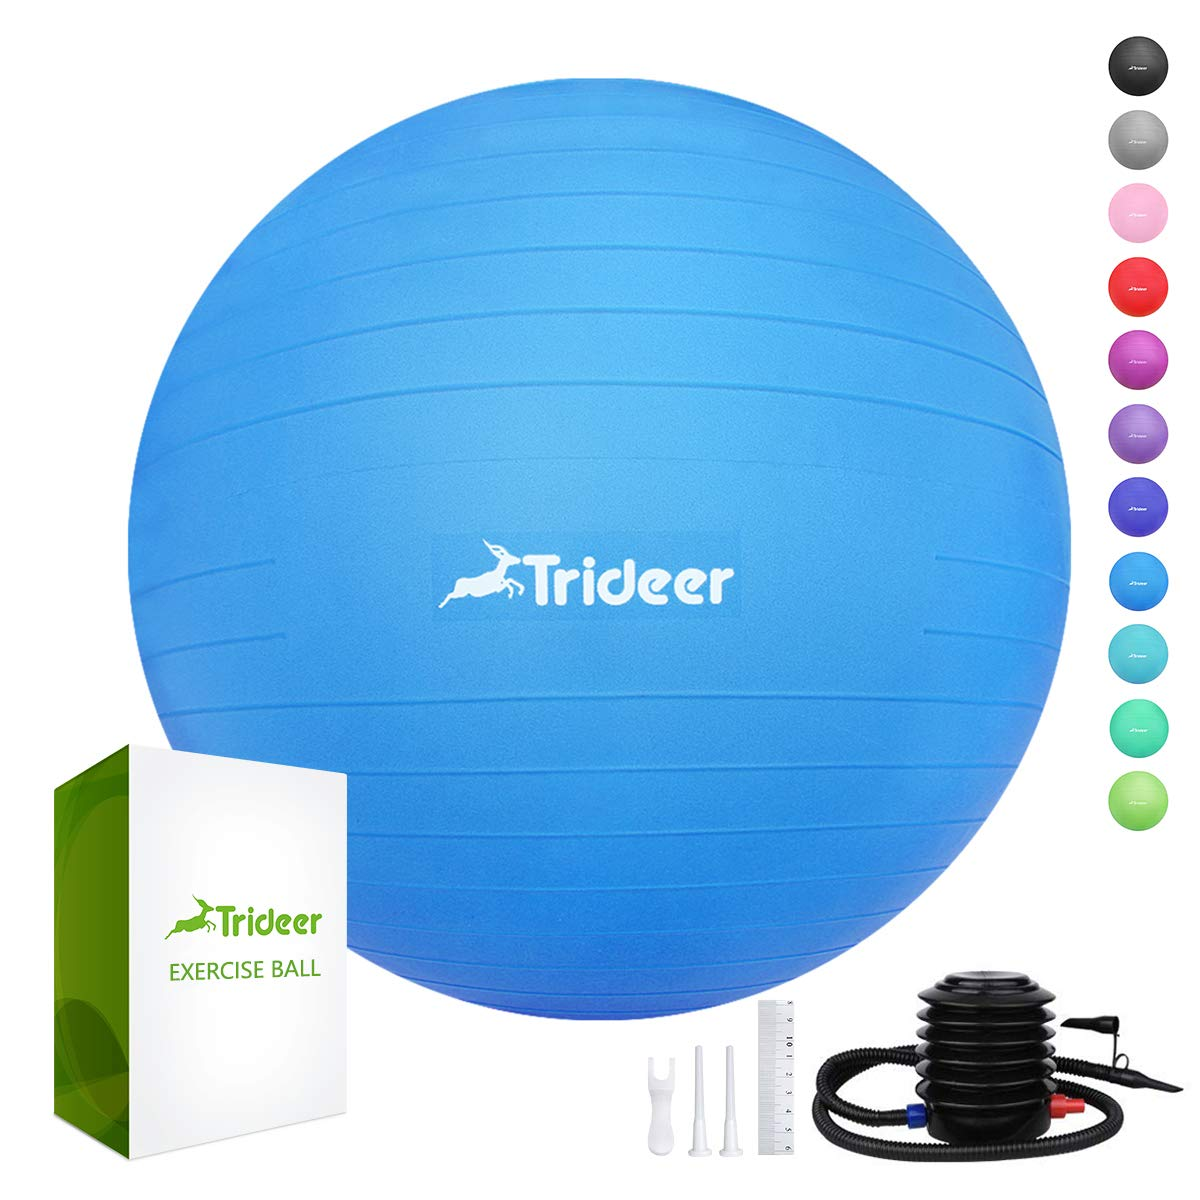 Trideer 45-85cm Exercise Ball, Birthing Ball, Ball Chair, Yoga Pilate Fitness Balance Ball with Pump Plug Kit, Anti-Slip & Anti-Burst (Dark Blue, 65cm)